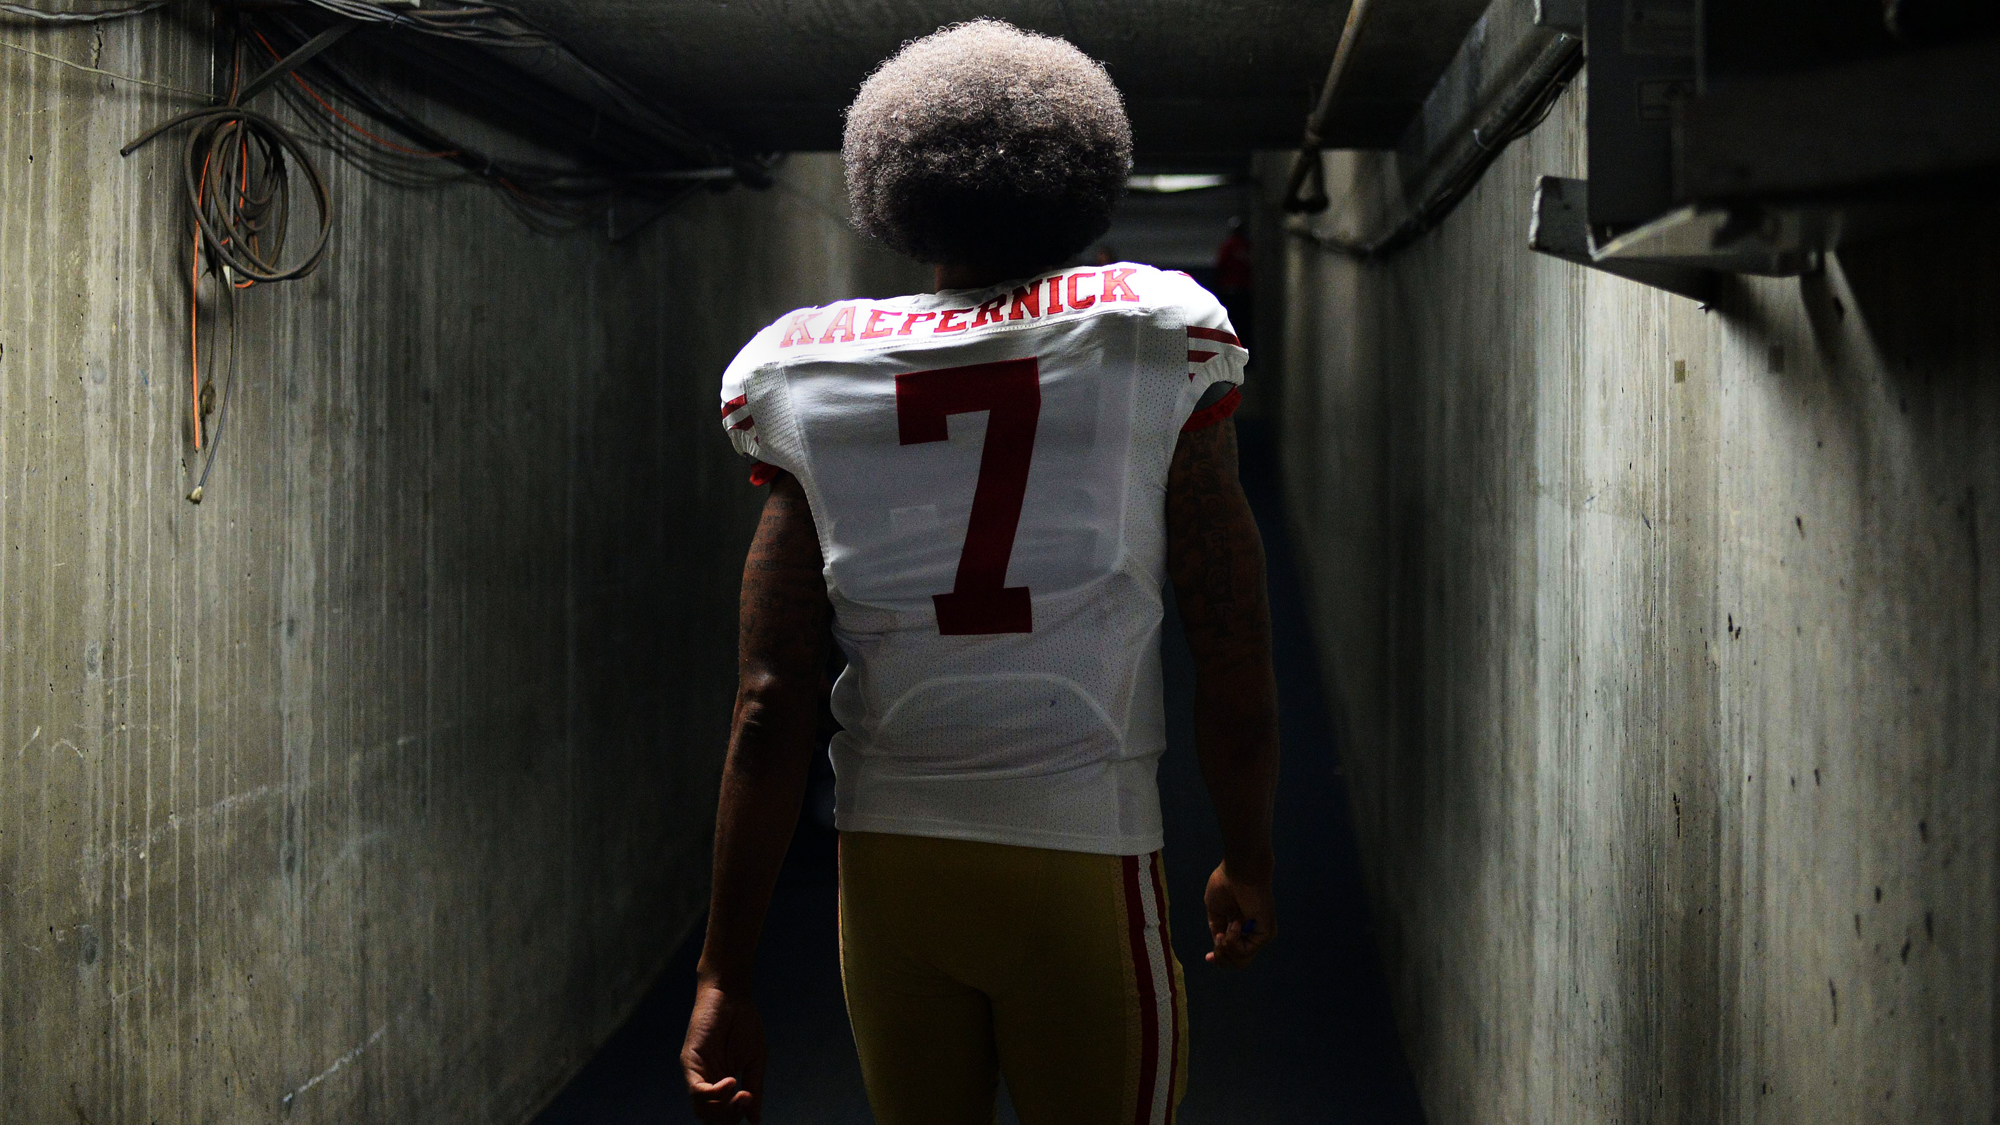 We May Have Seen The Last Of Colin Kaepernick In The Nfl